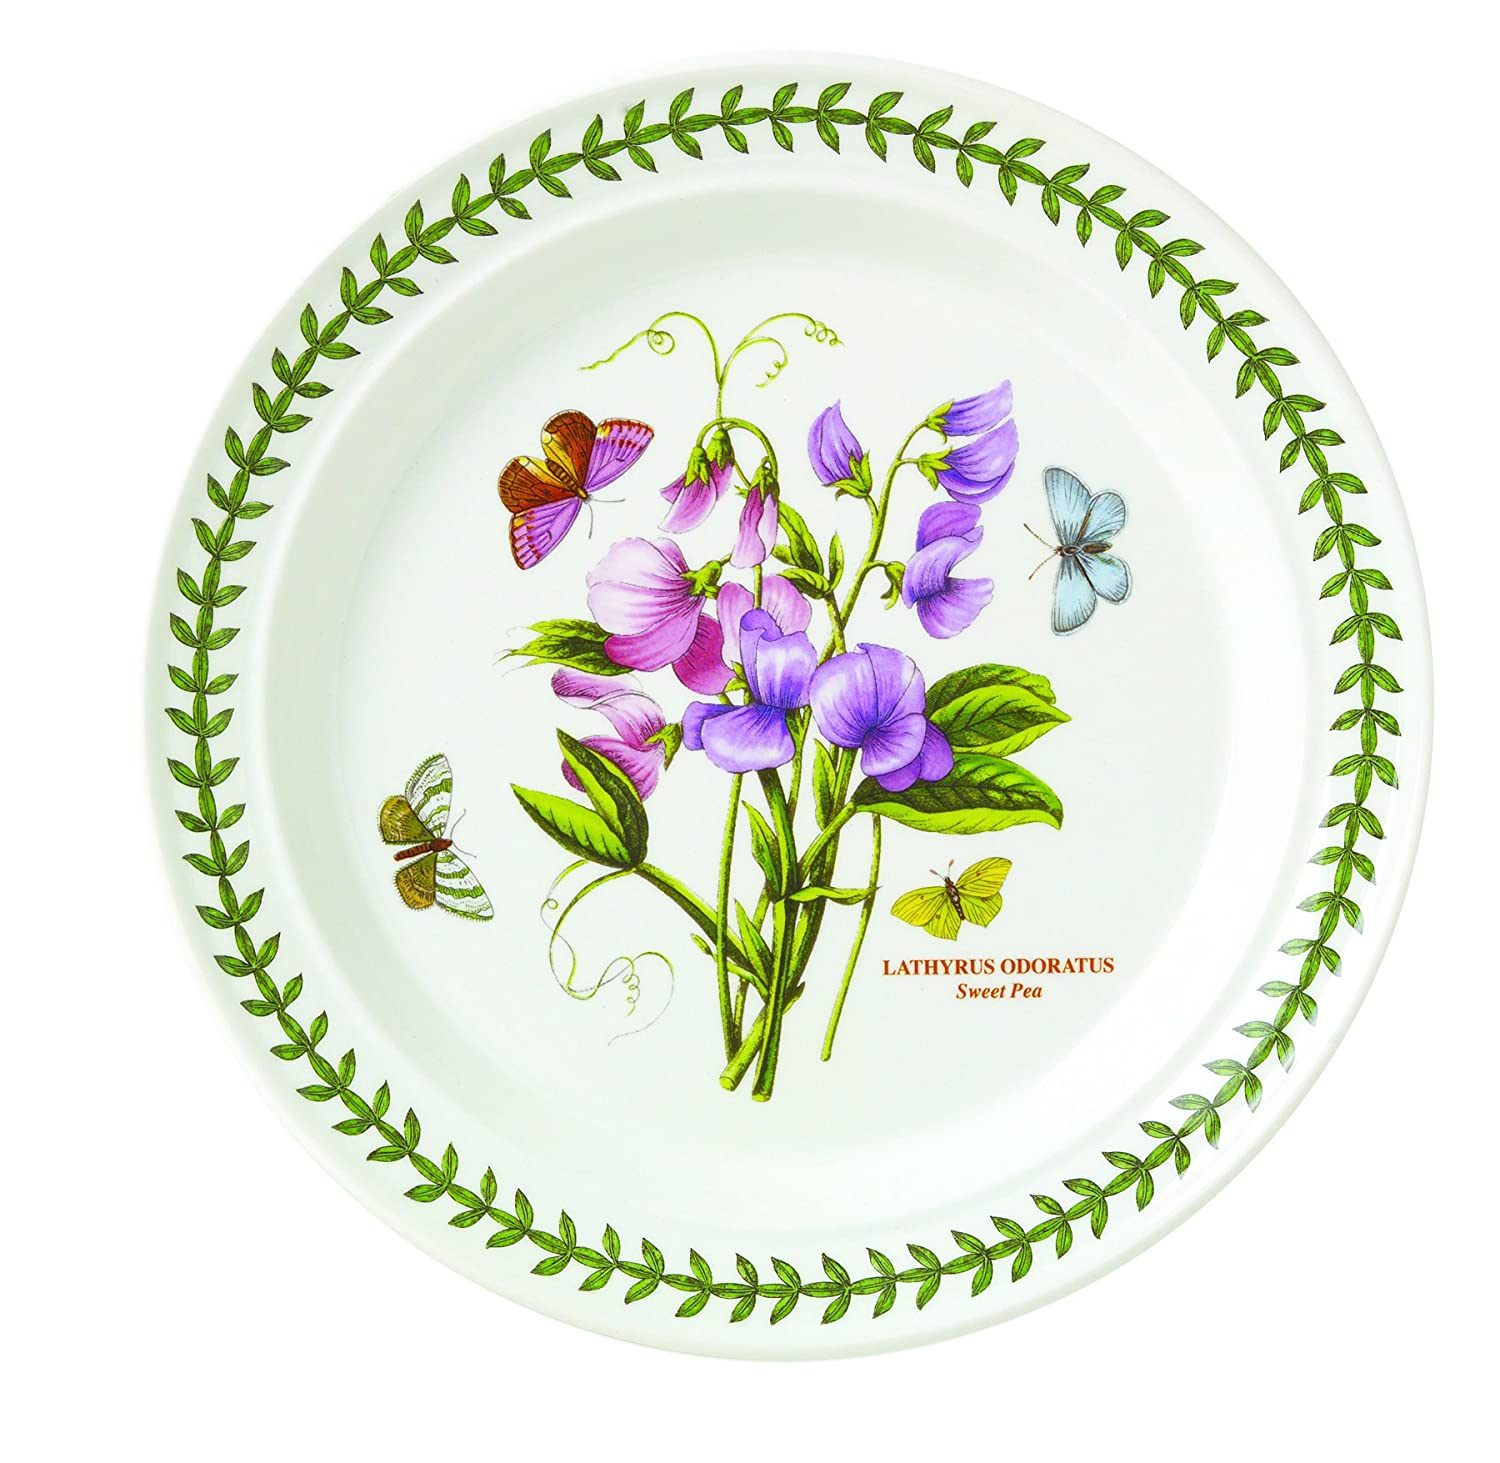 Amazon.com | Portmeirion Botanic Garden Dinner Plates Set of 6 Assorted Motifs Dinner Plates  sc 1 st  Amazon.com & Amazon.com | Portmeirion Botanic Garden Dinner Plates Set of 6 ...